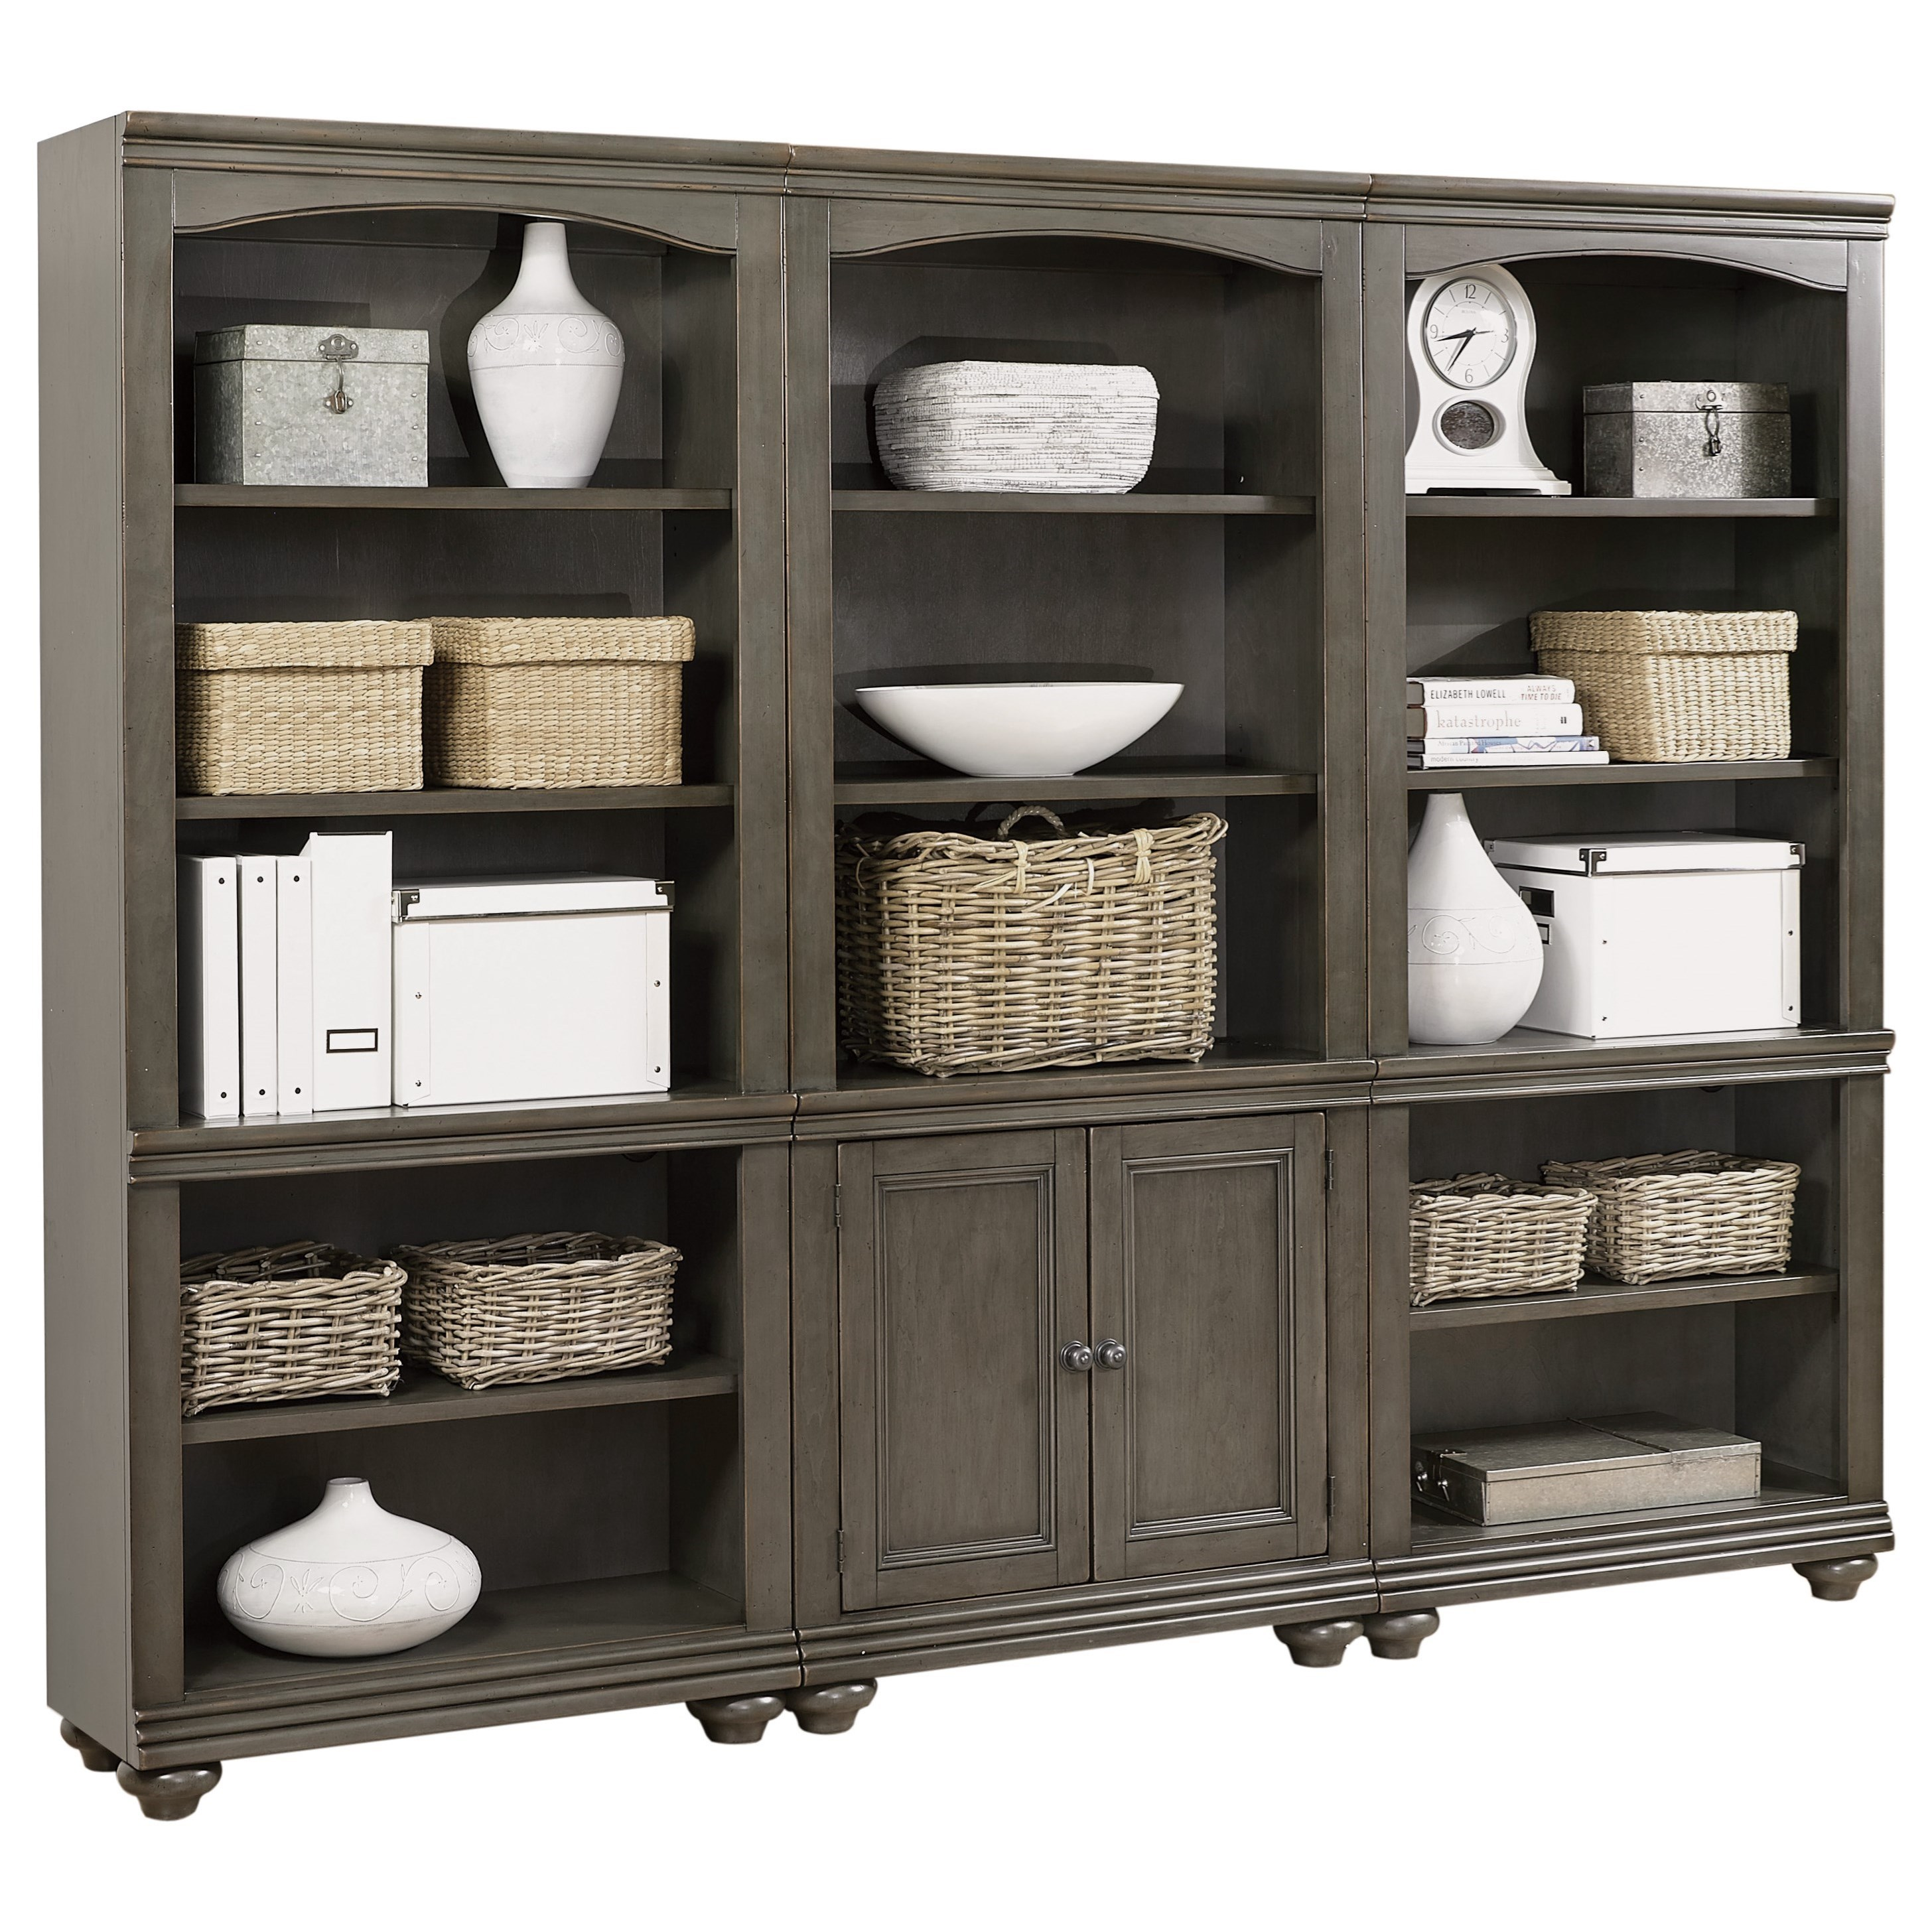 Oxford Bookcase Wall by Aspenhome at Walker's Furniture